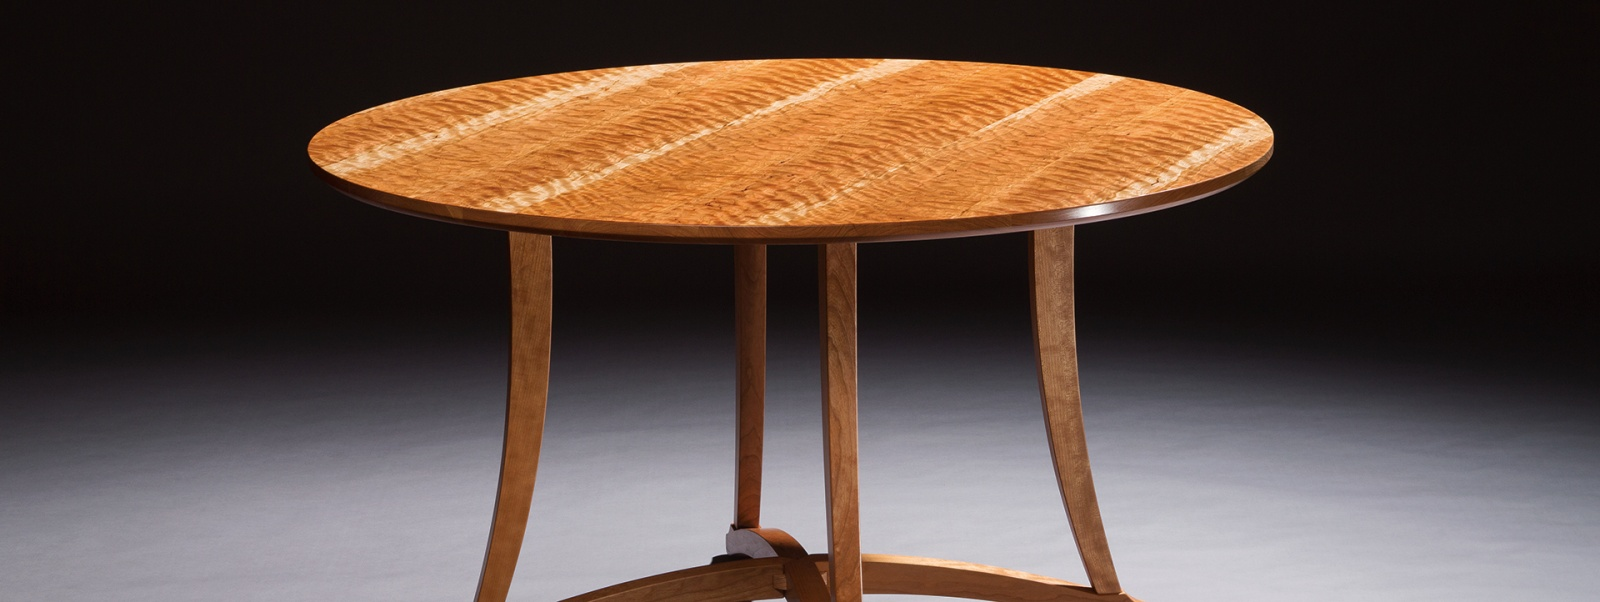 Custom handmade dining table created by furniture master Timothy Coleman